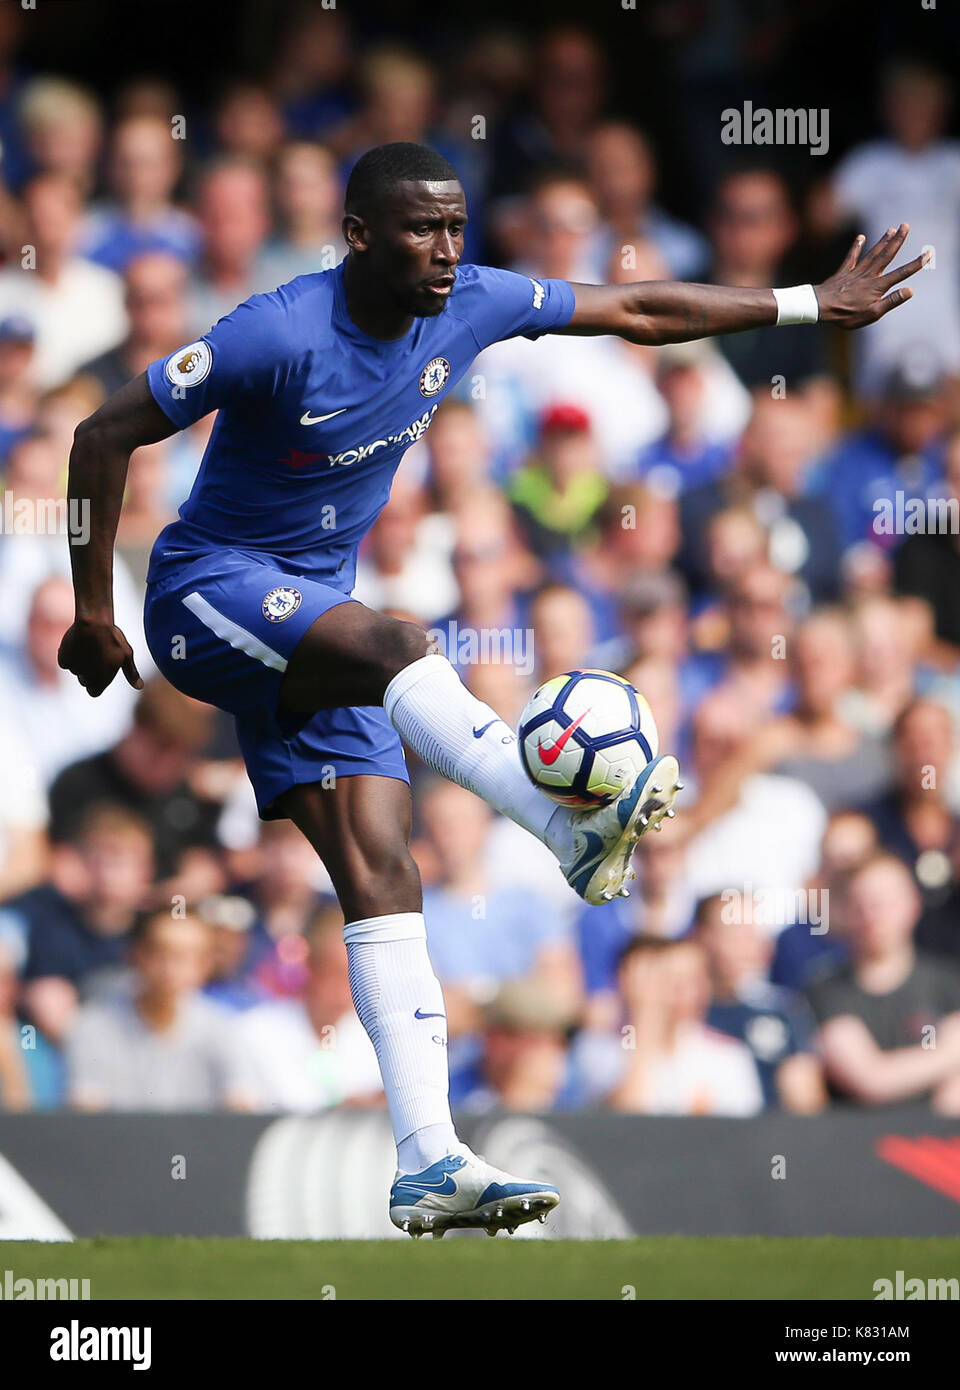 Chelsea s Antonio Rudiger during the Premier League match at